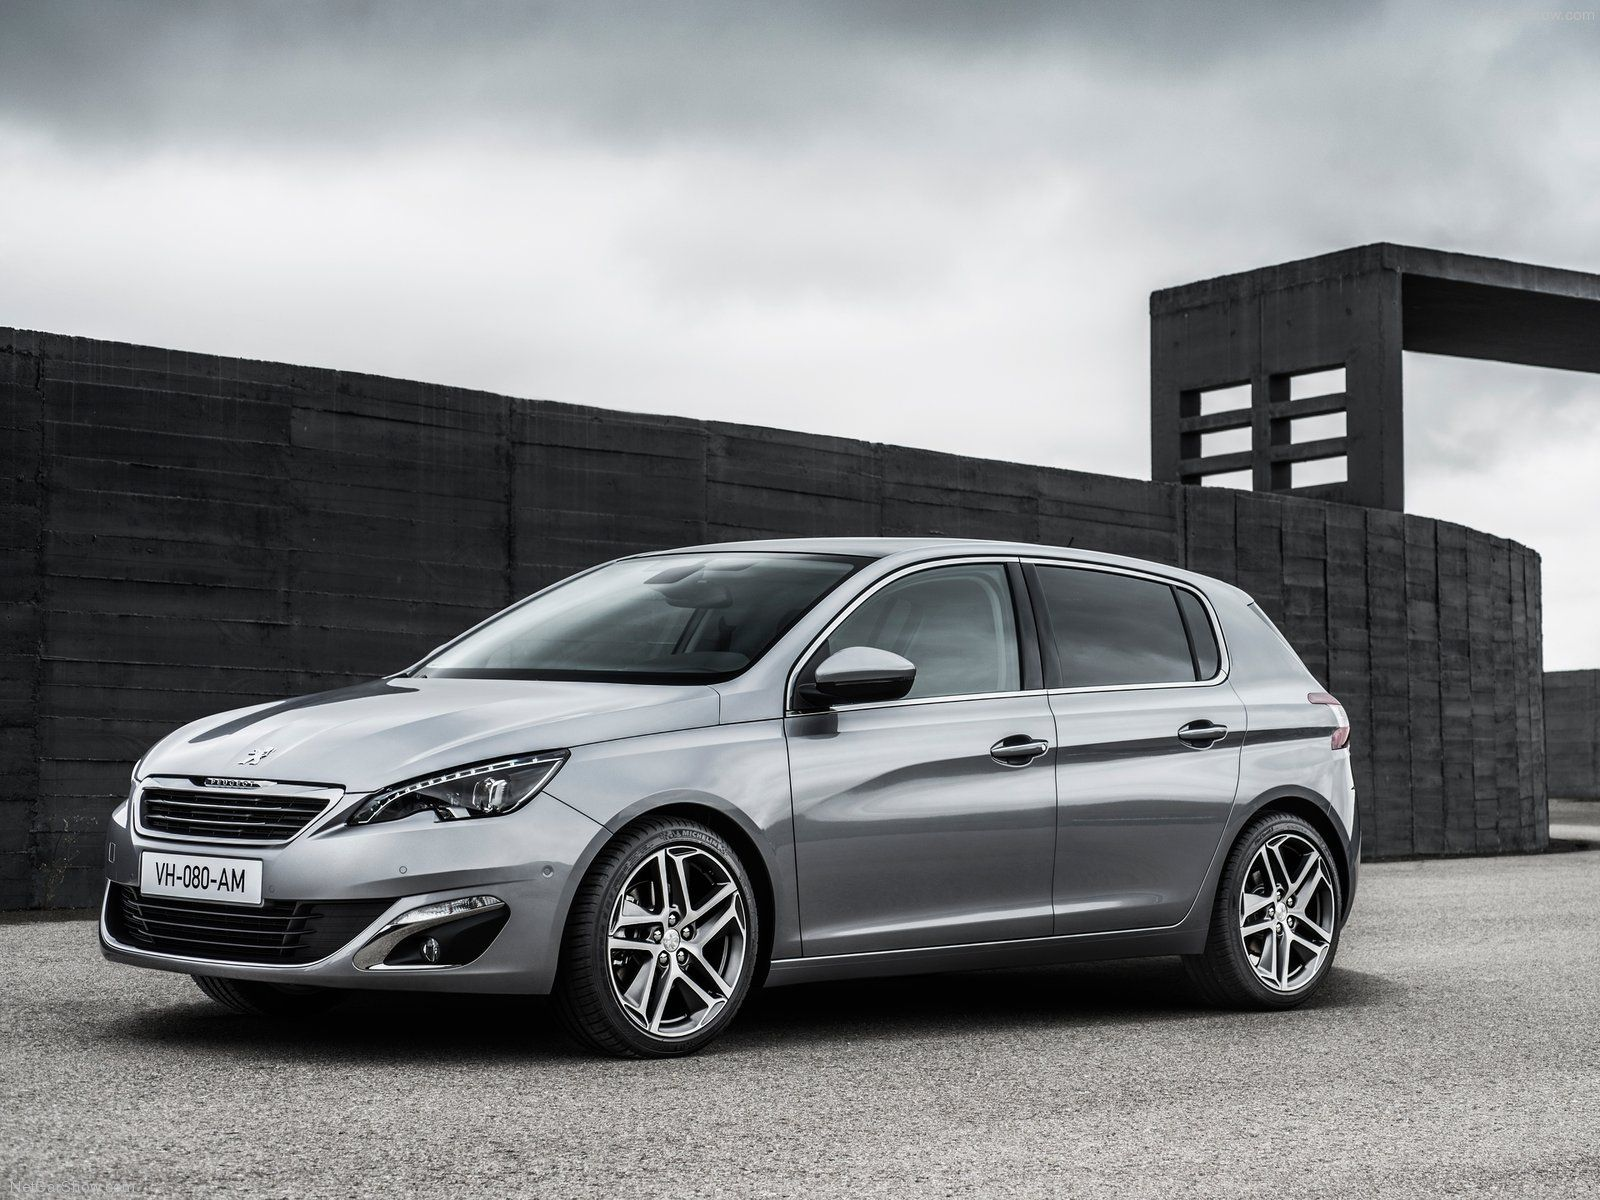 2013 2014 peugeot 308 in grey nice new french car http